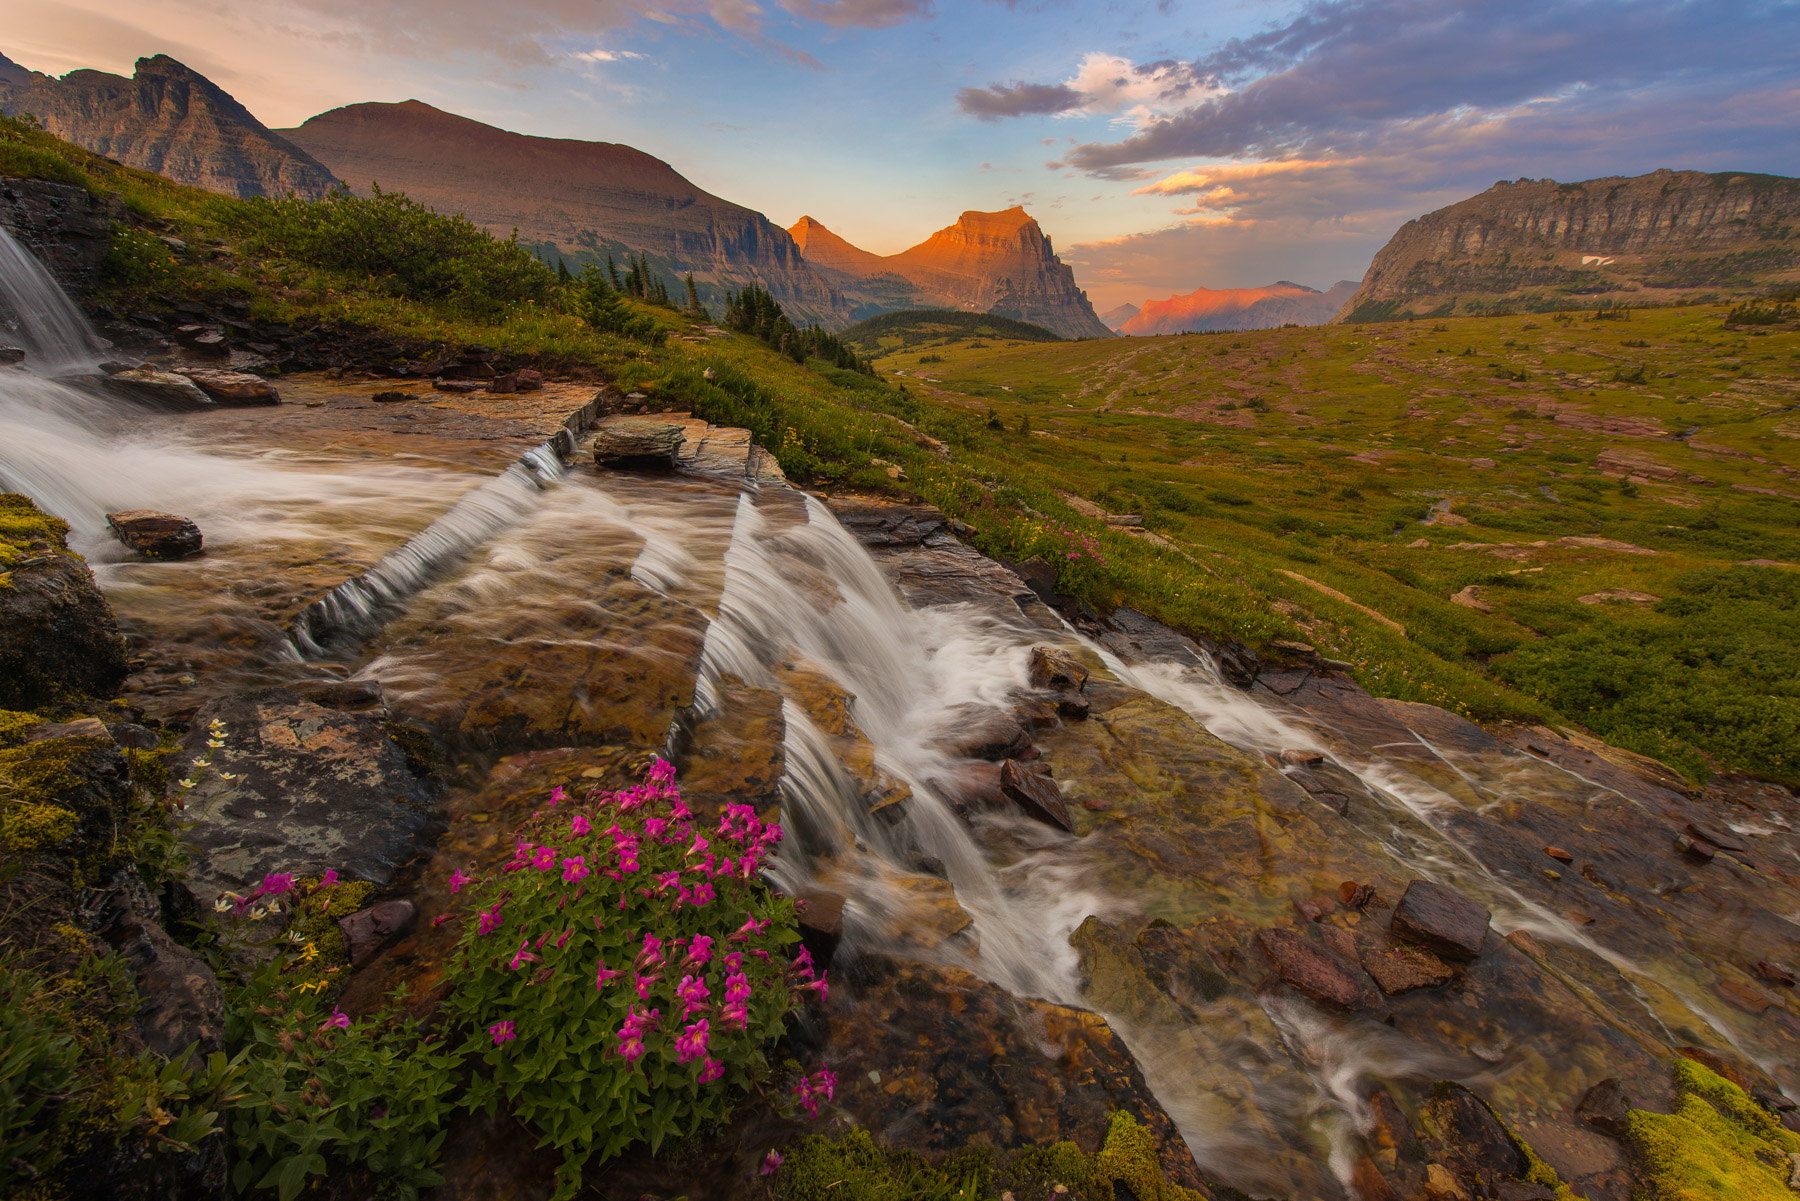 A stunning display of light captured from a remote waterfall near Logan Pass in Glacier National Park, Montana at sunset.